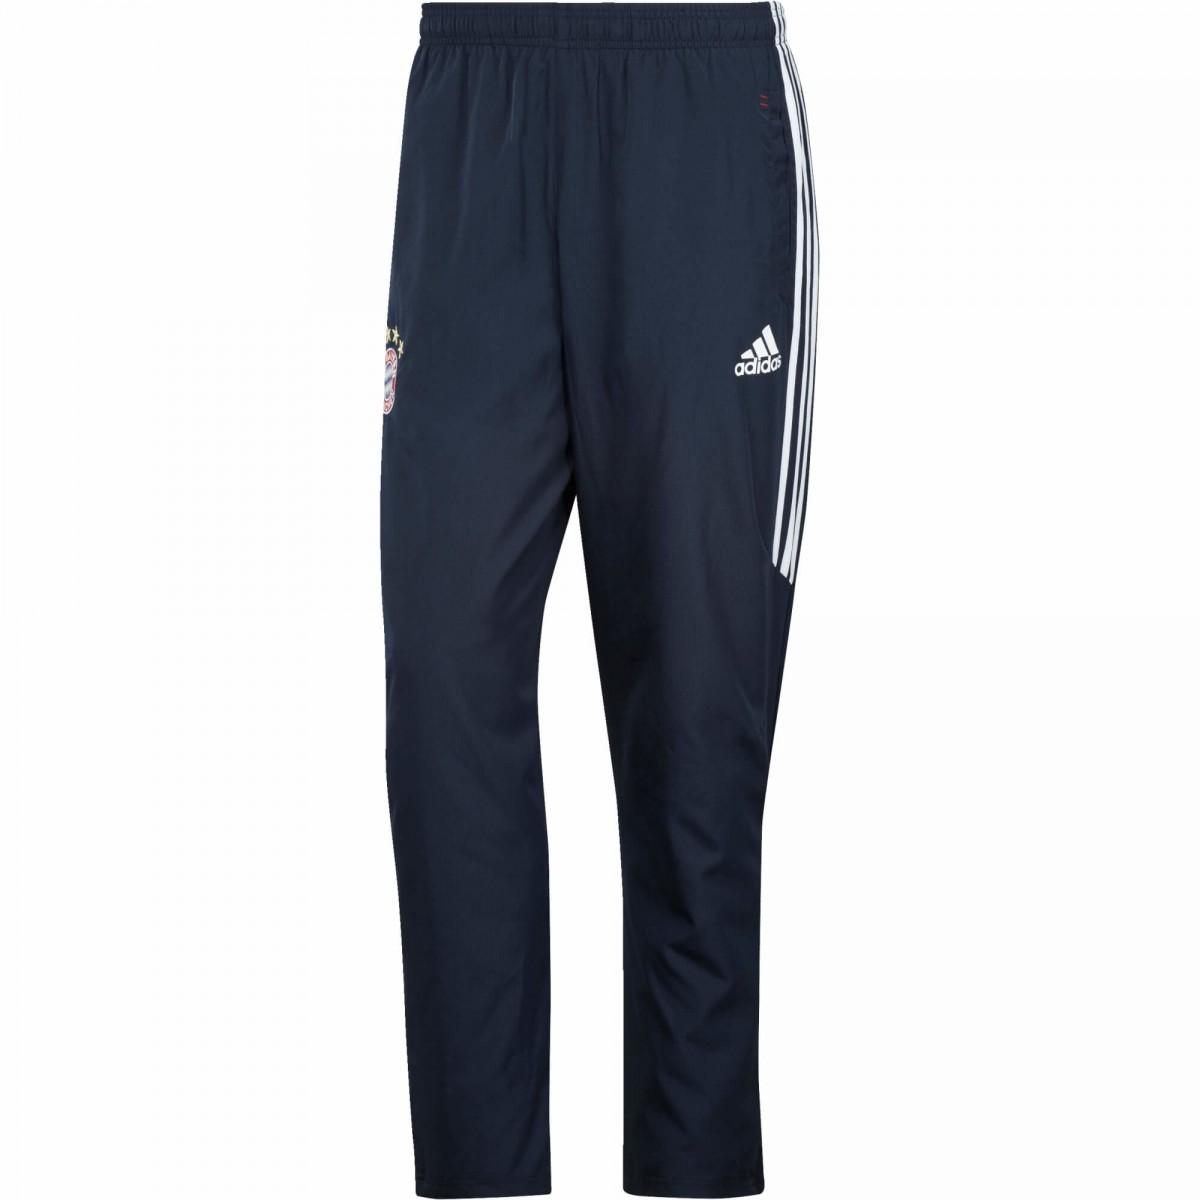 Pantalon de football adidas performance FC Bayern Munich